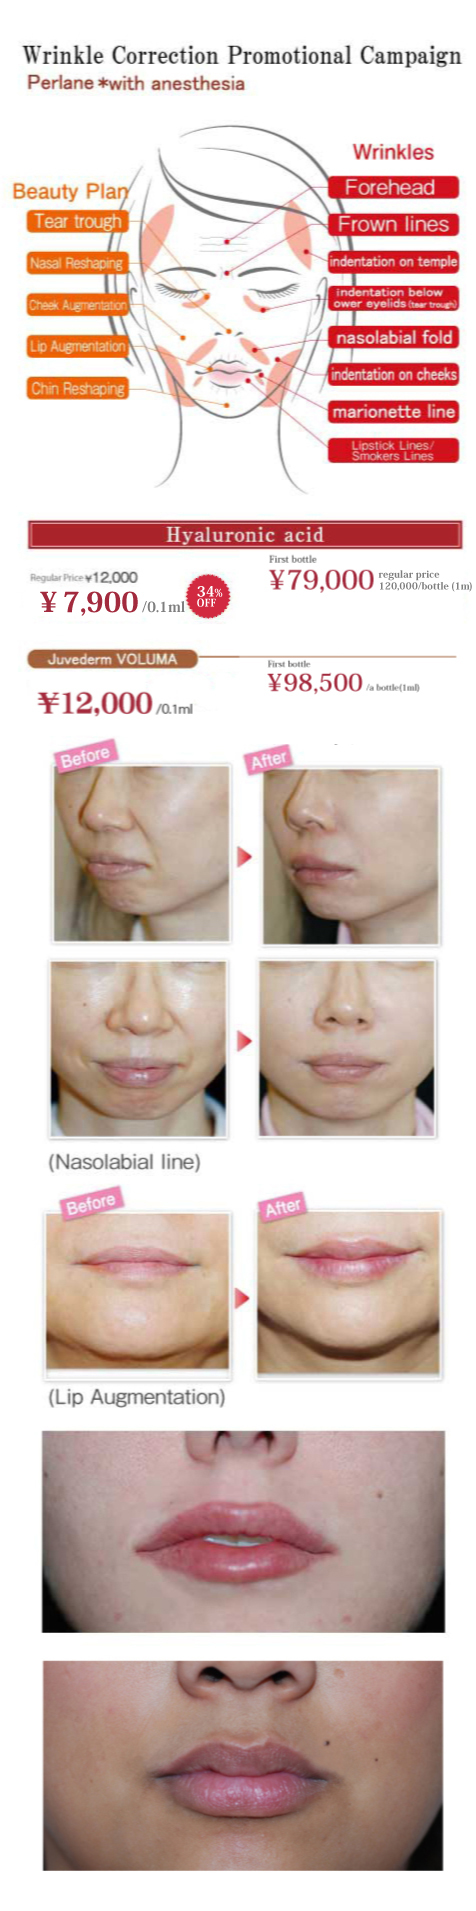 Hyaluronic Acid Muscle Growth